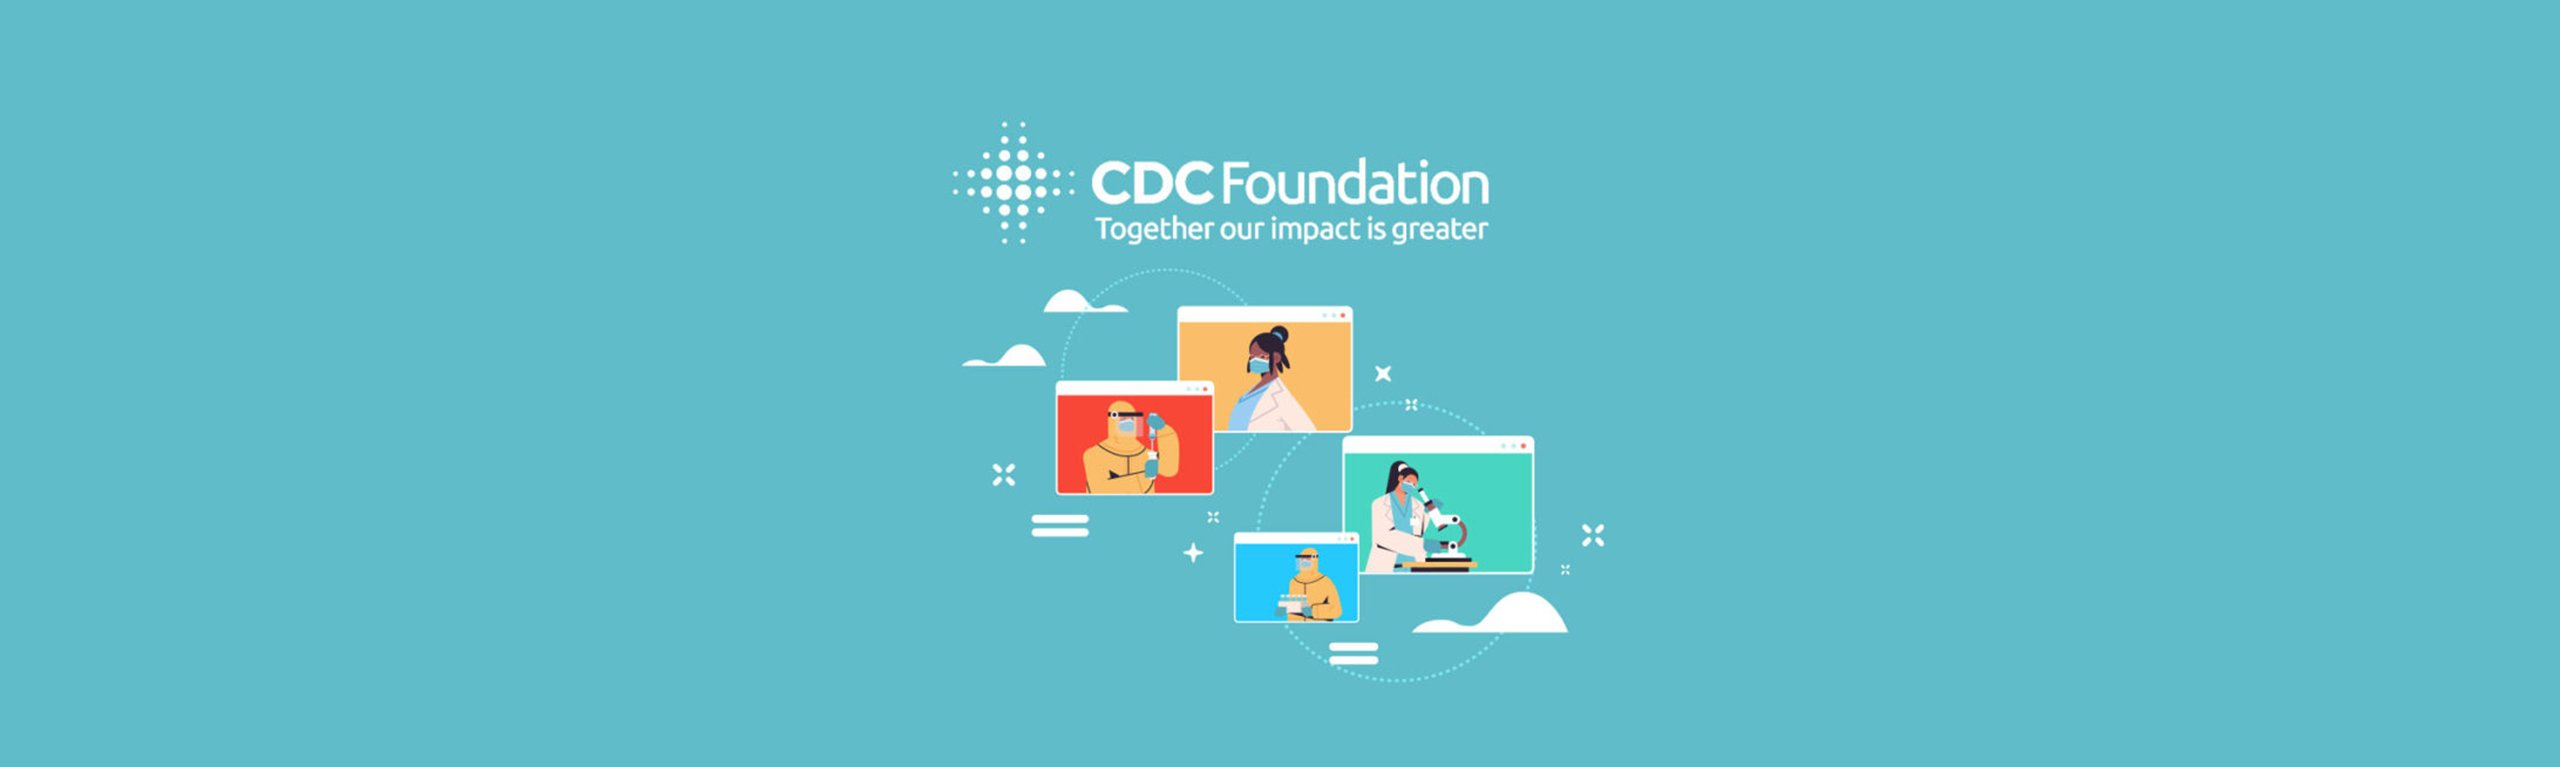 Characters of CDC Foundation doctors and researchers